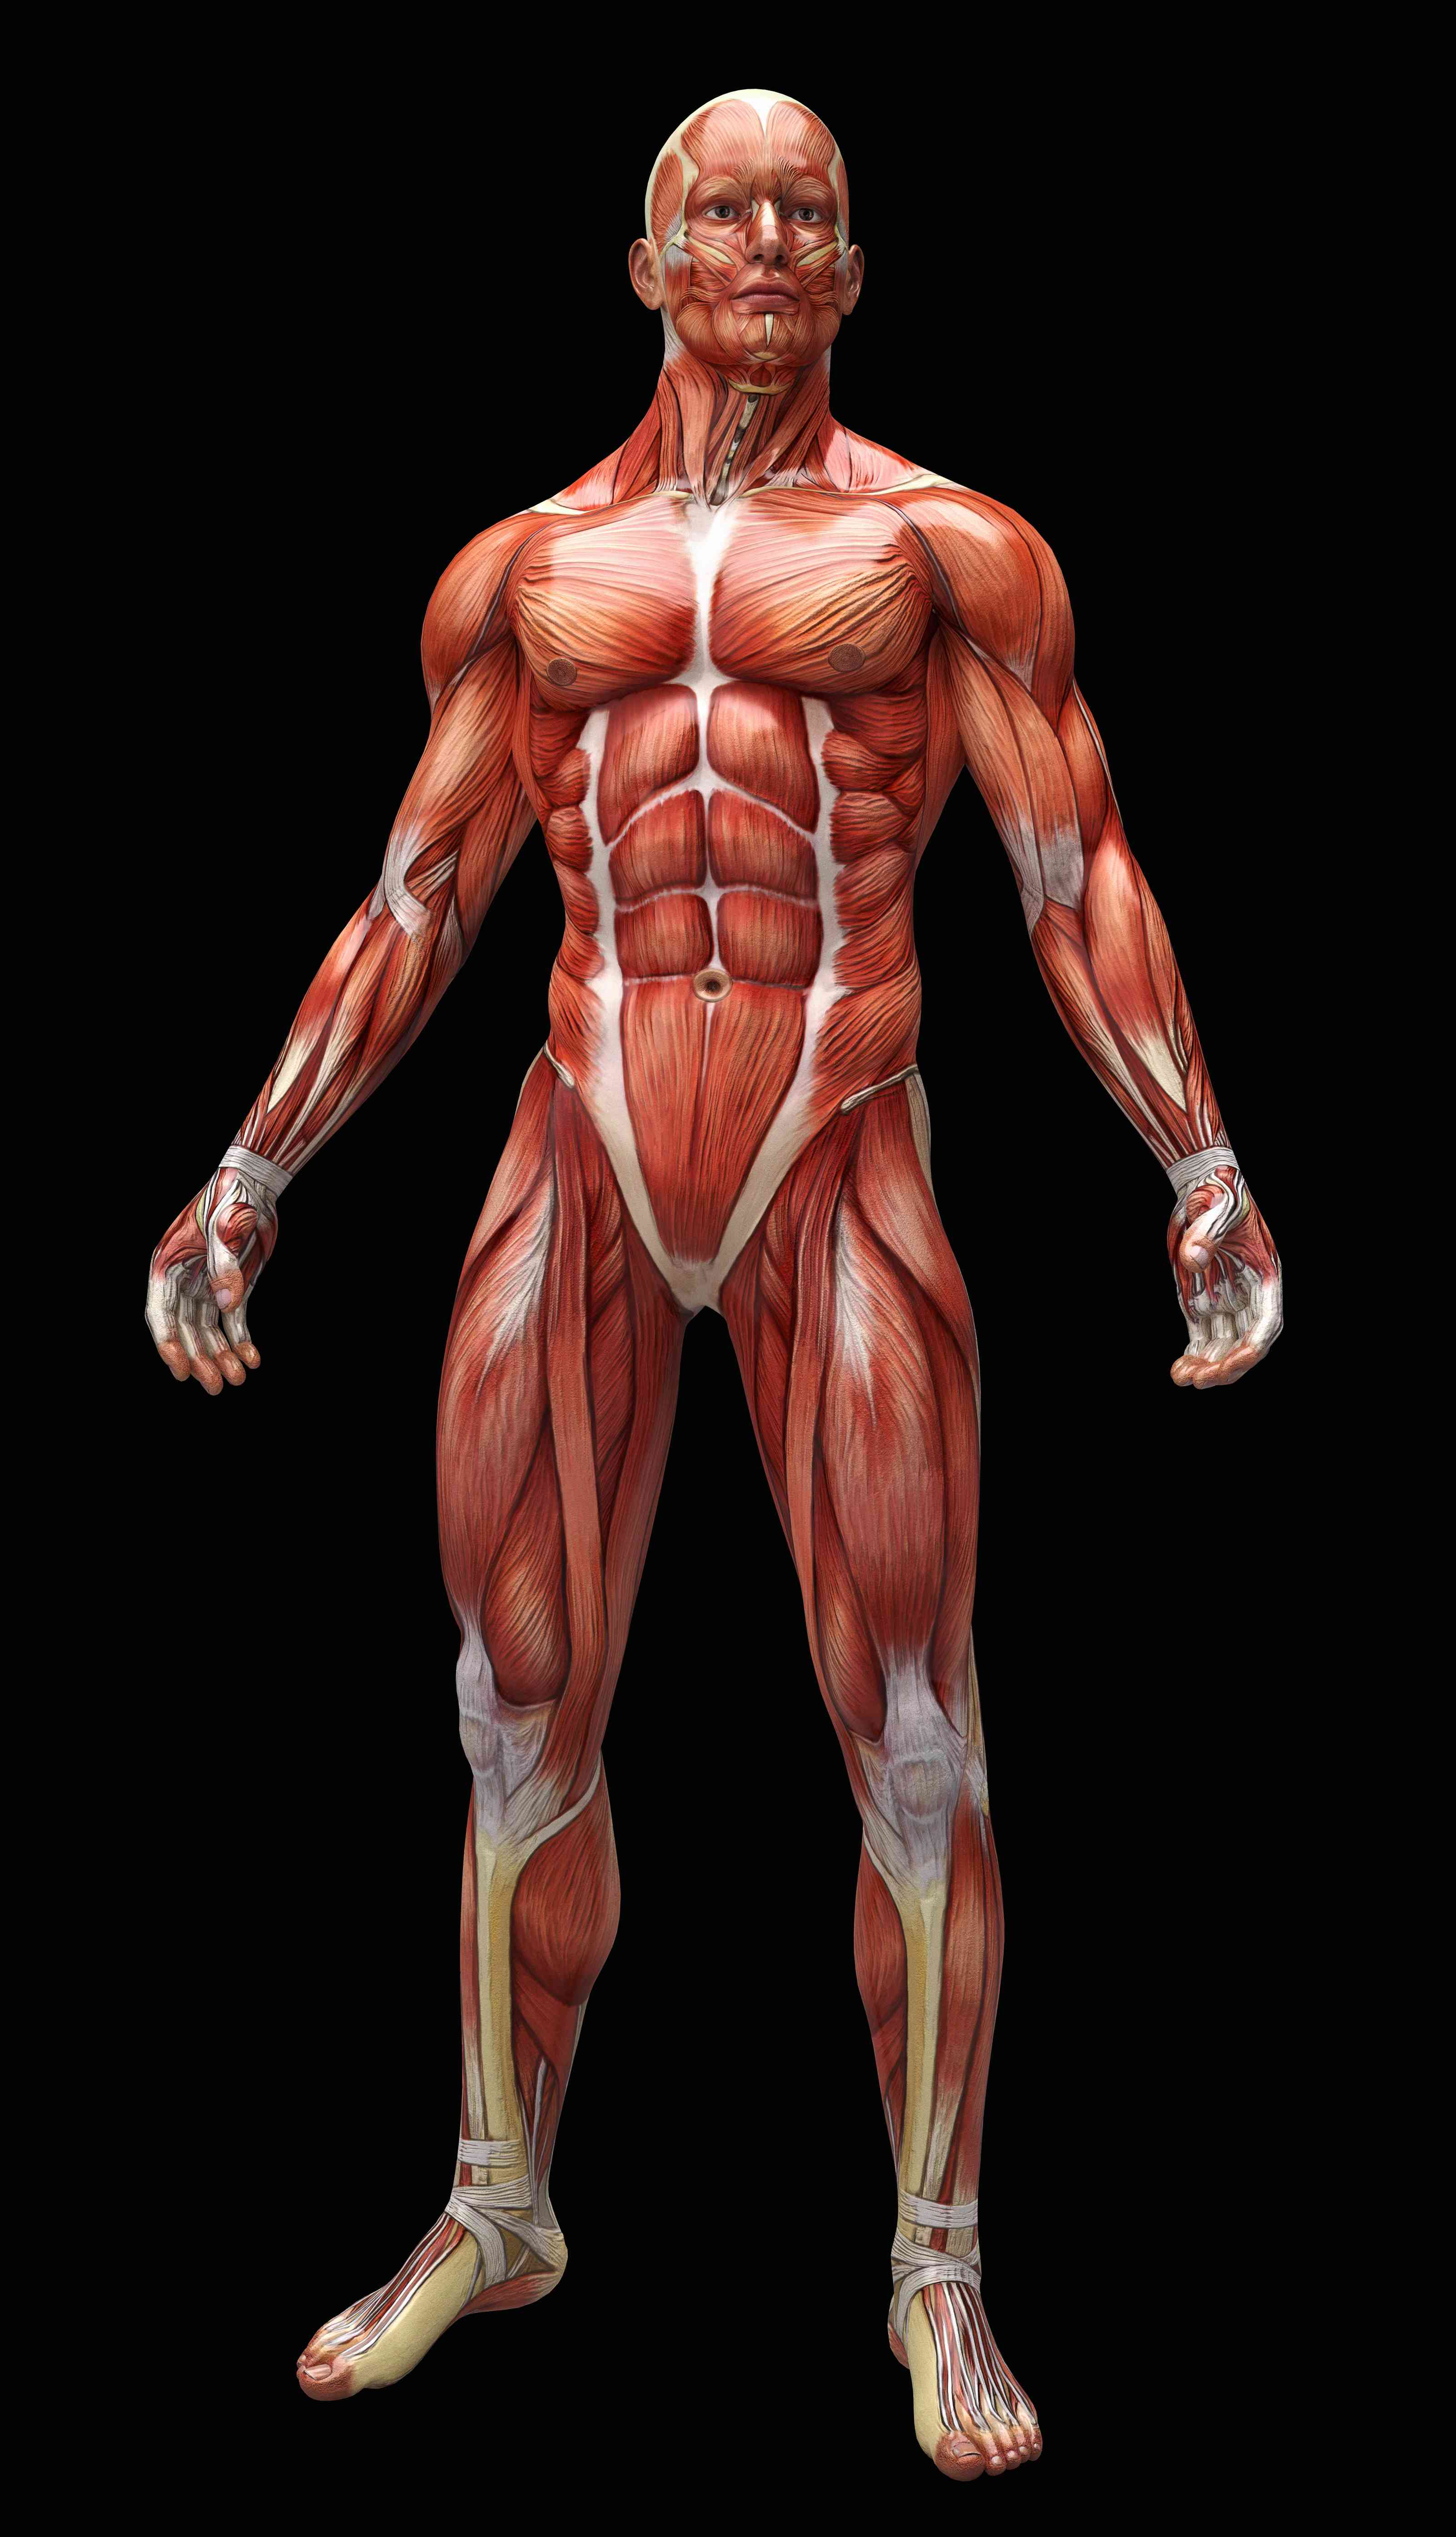 Digital illustration of the human muscles and tendons.